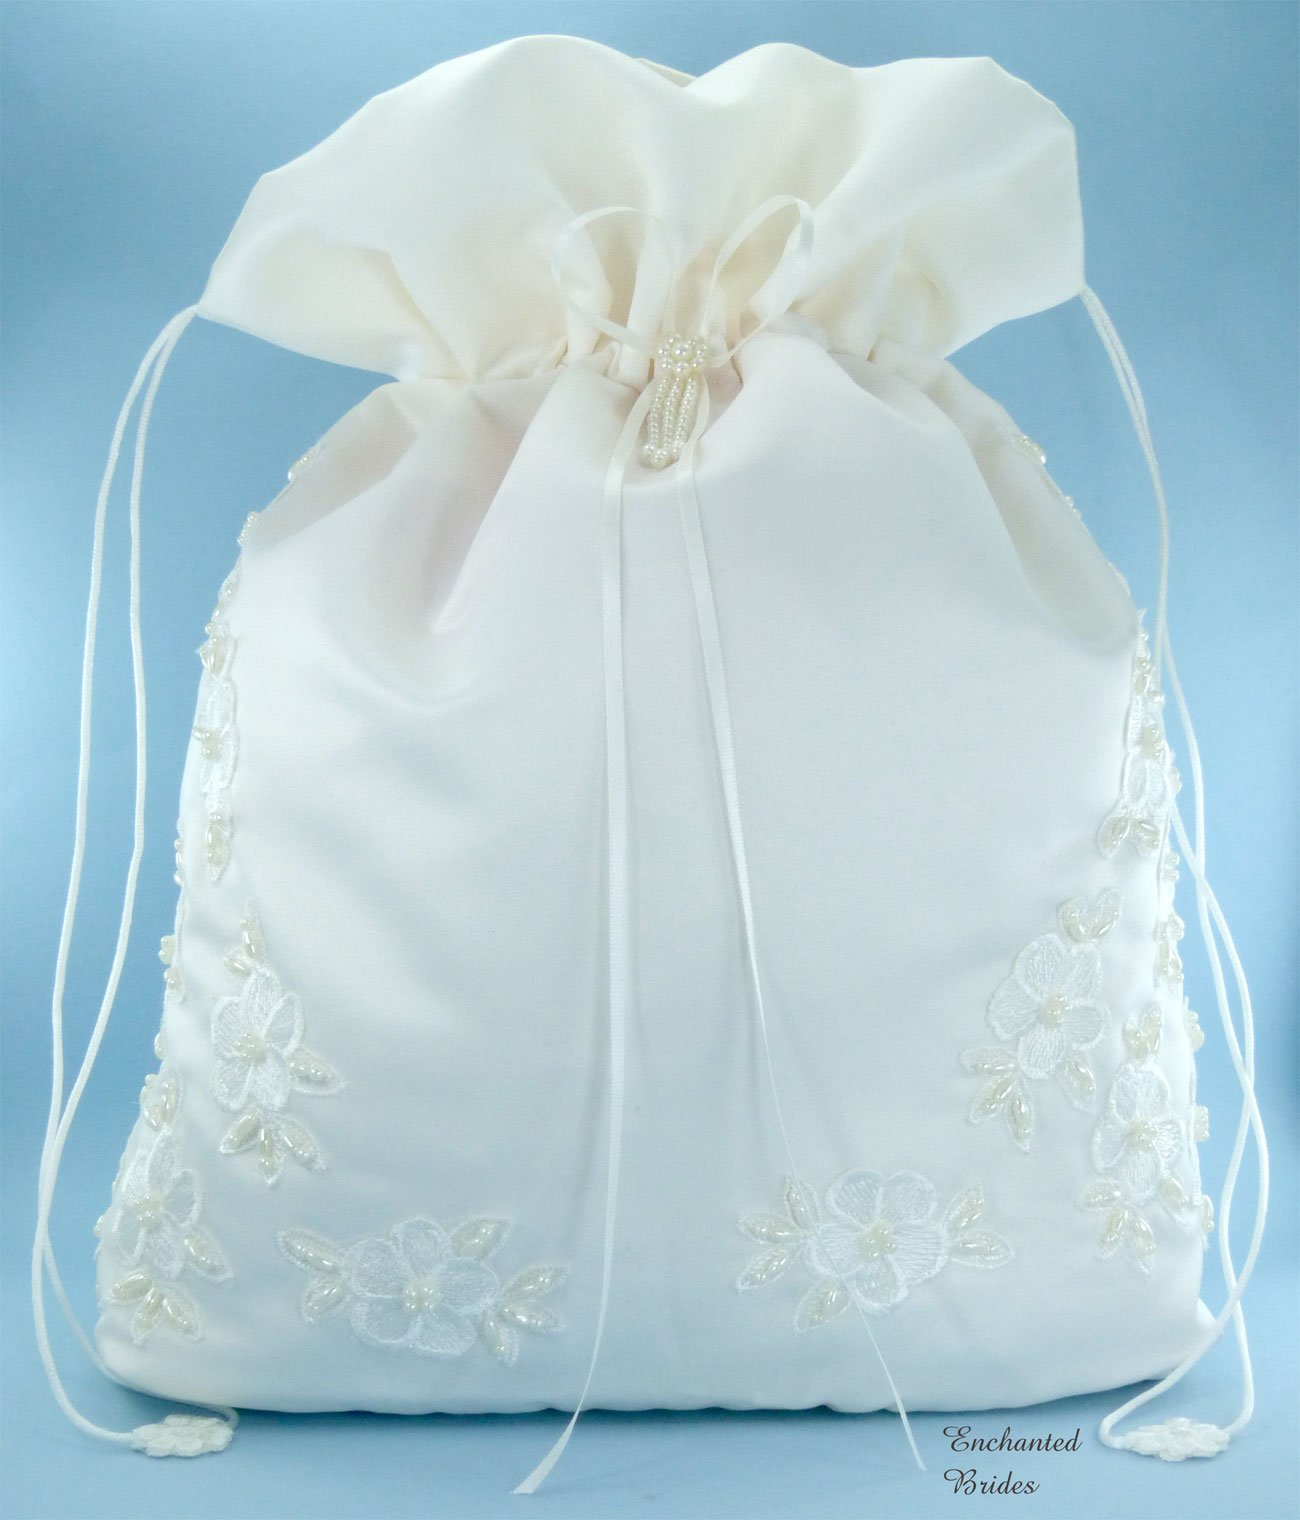 Satin Bridal Wedding Money Bag (#E1D4MBiv) in Large Size with Pearl-Embellished Floral Lace for Receiving Envelops, Dollar Dance, Bridal Purse, and Other Special Occasions by Enchanted Bride